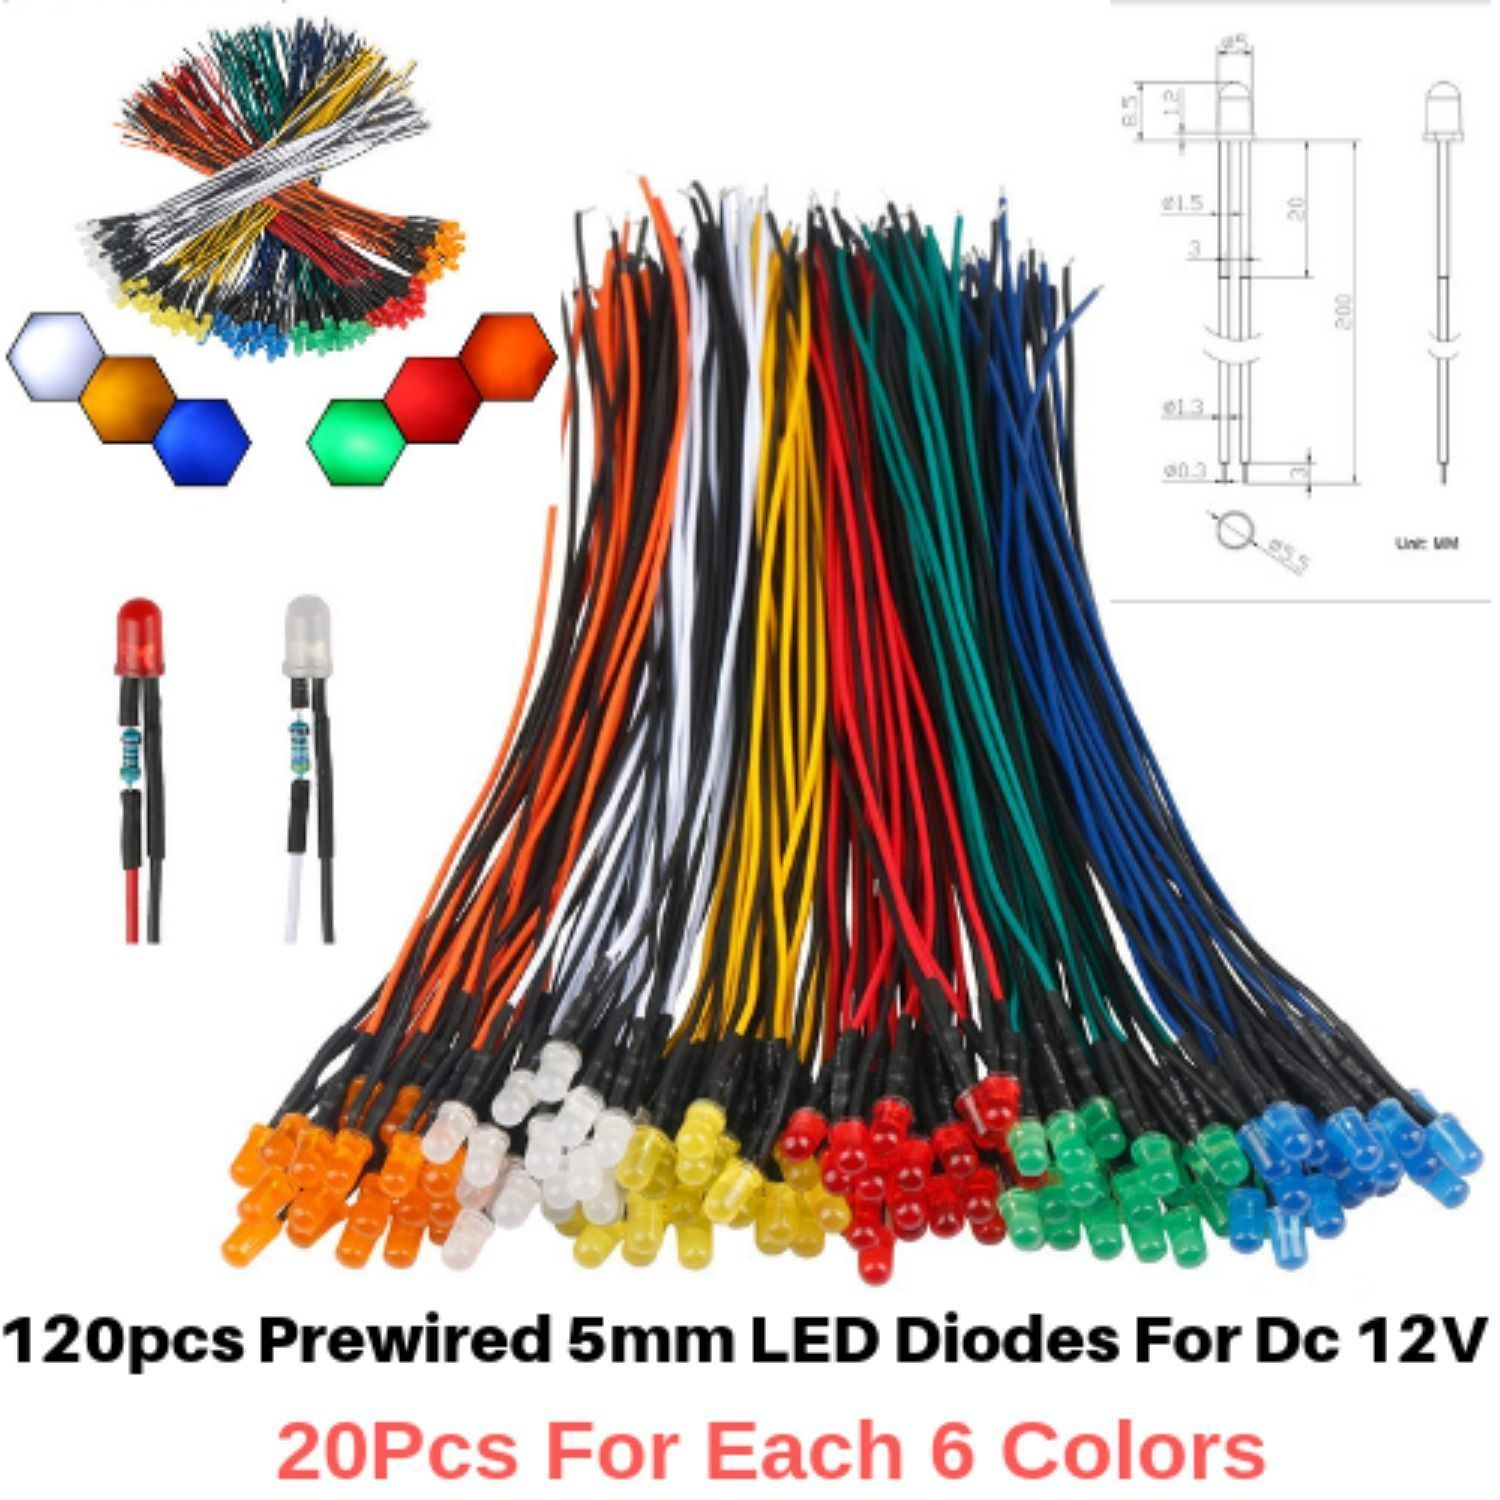 120pcs Led Light Emitting Diodes 12V DC(6 Color x 20pcs) Pre Wired 7.9 5mm Led #lightemittingdiode EDGELEC Provides 5-Year Warranty, High Quality Assurance. #lightemittingdiode 120pcs Led Light Emitting Diodes 12V DC(6 Color x 20pcs) Pre Wired 7.9 5mm Led #lightemittingdiode EDGELEC Provides 5-Year Warranty, High Quality Assurance. #lightemittingdiode 120pcs Led Light Emitting Diodes 12V DC(6 Color x 20pcs) Pre Wired 7.9 5mm Led #lightemittingdiode EDGELEC Provides 5-Year Warranty, High Quality #lightemittingdiode